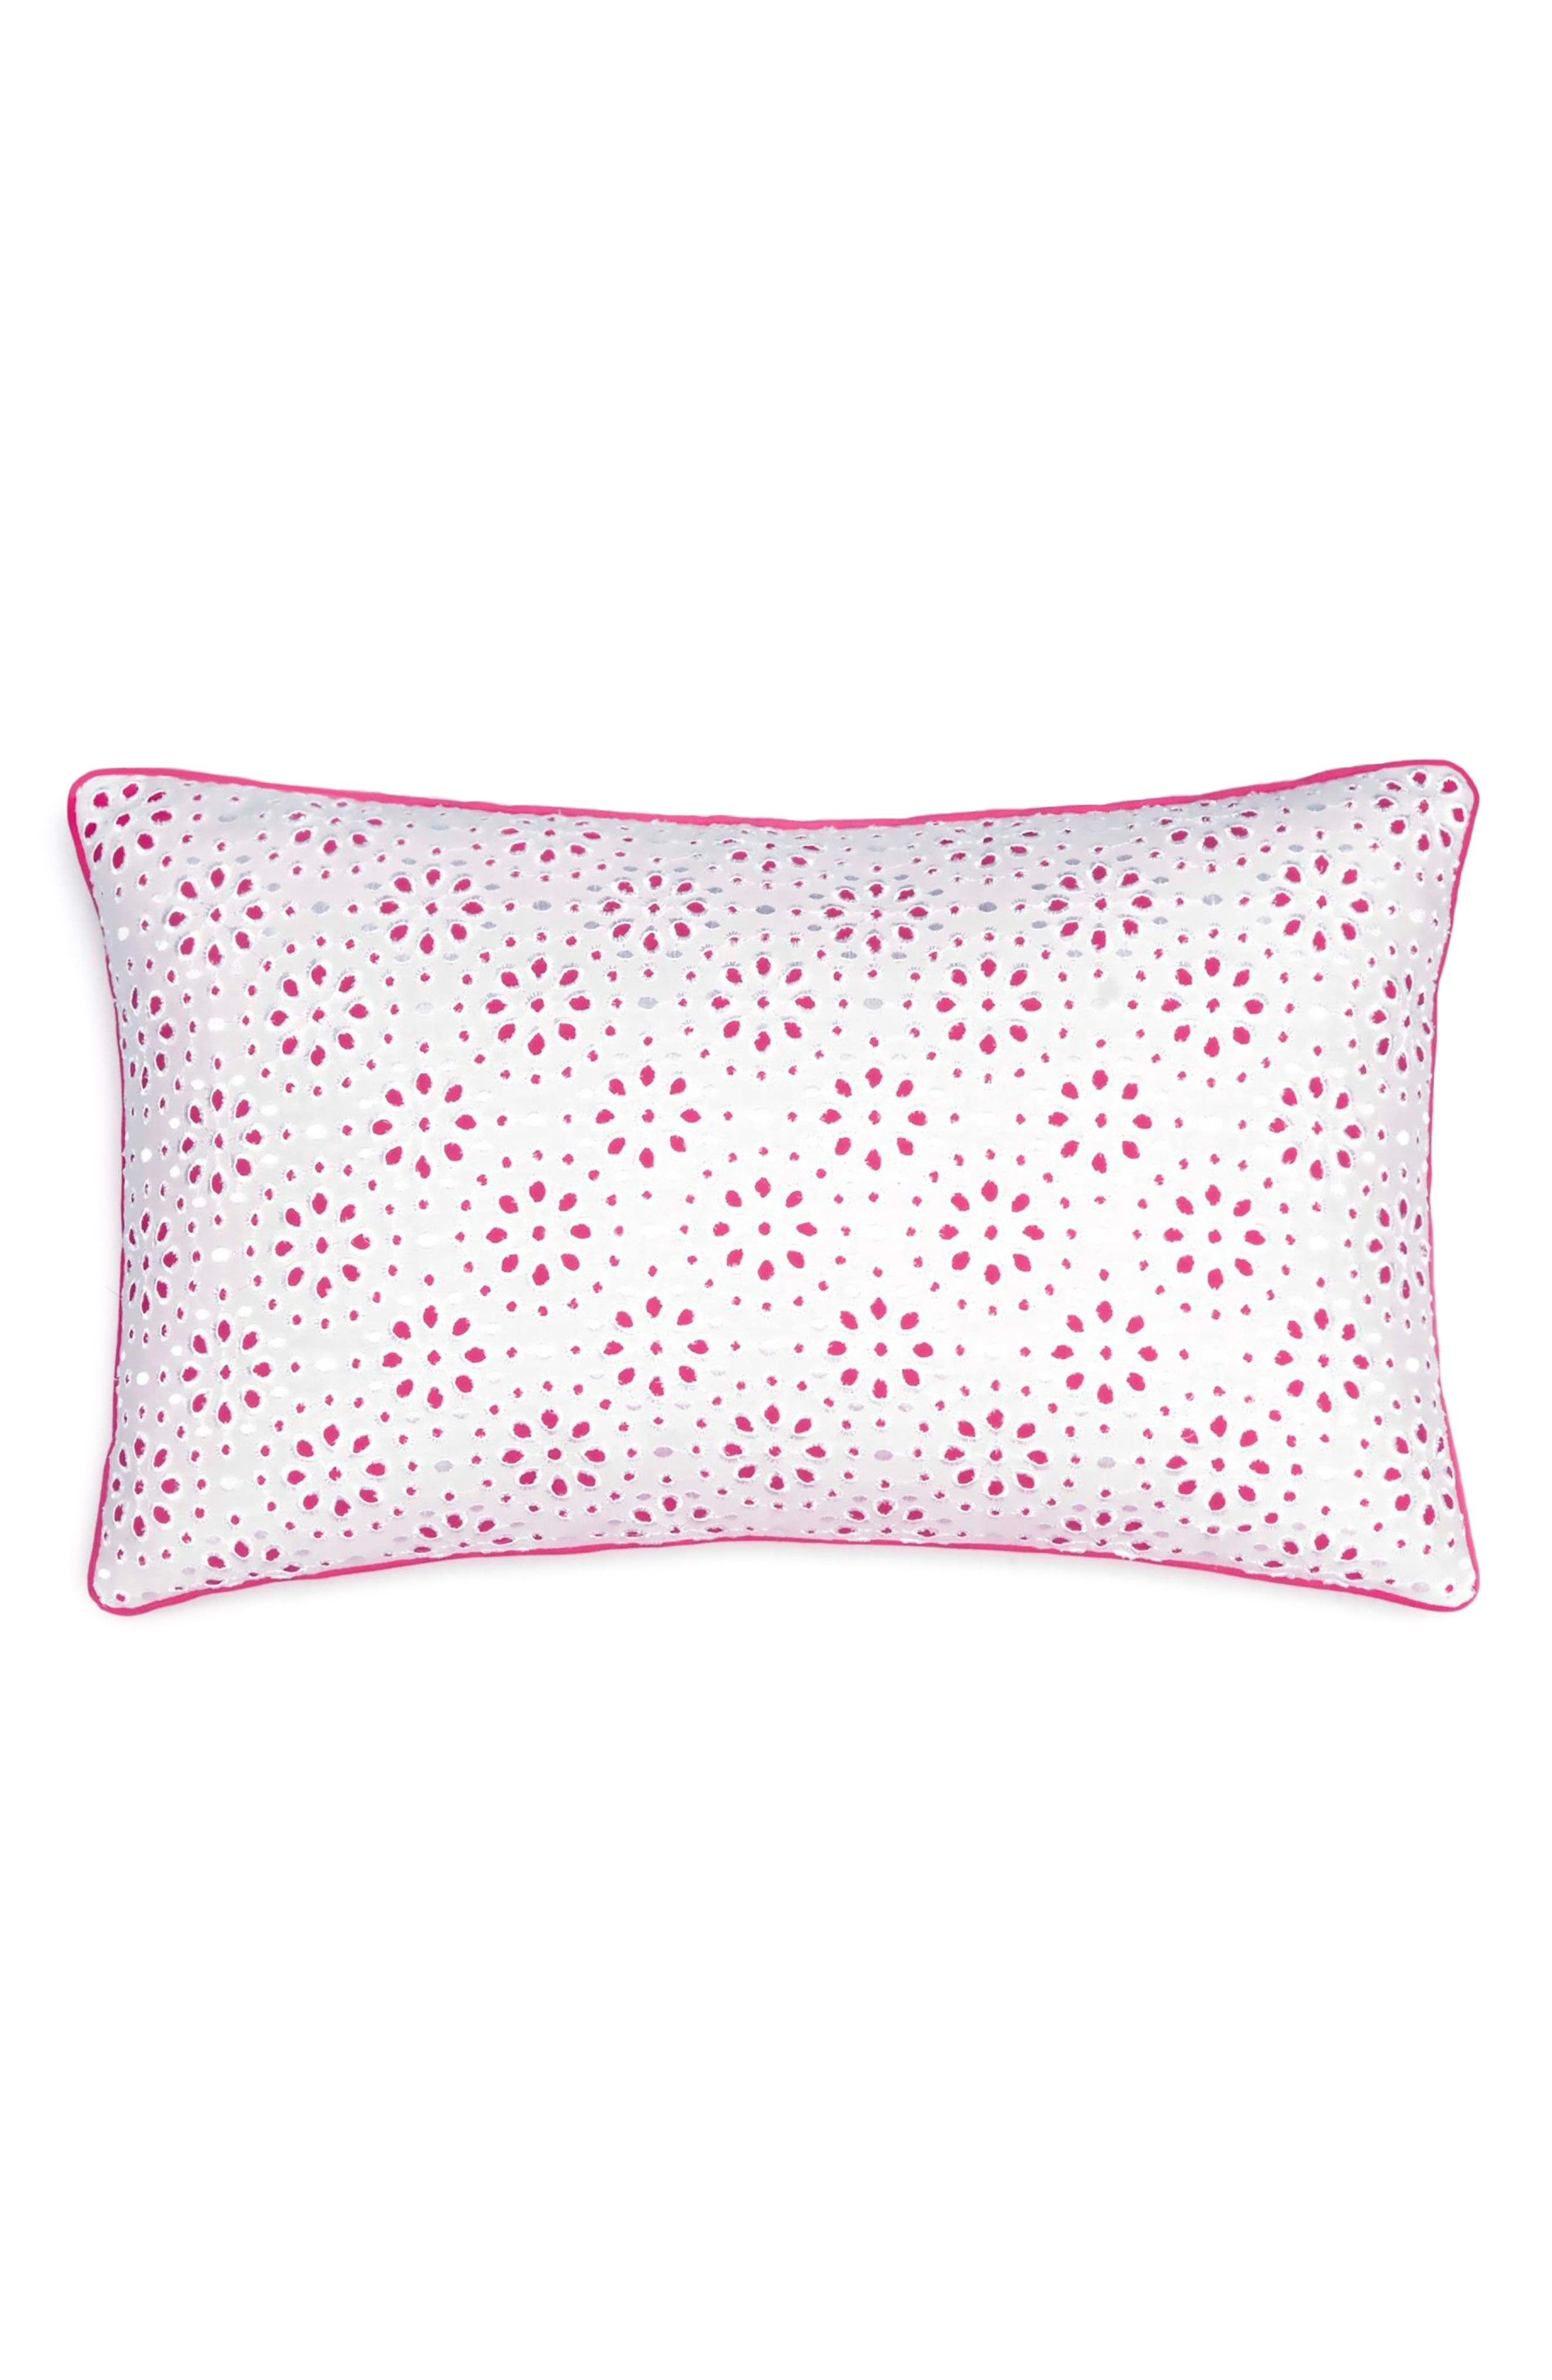 Floral Eyelet Pillow,                         Main,                         color, 650